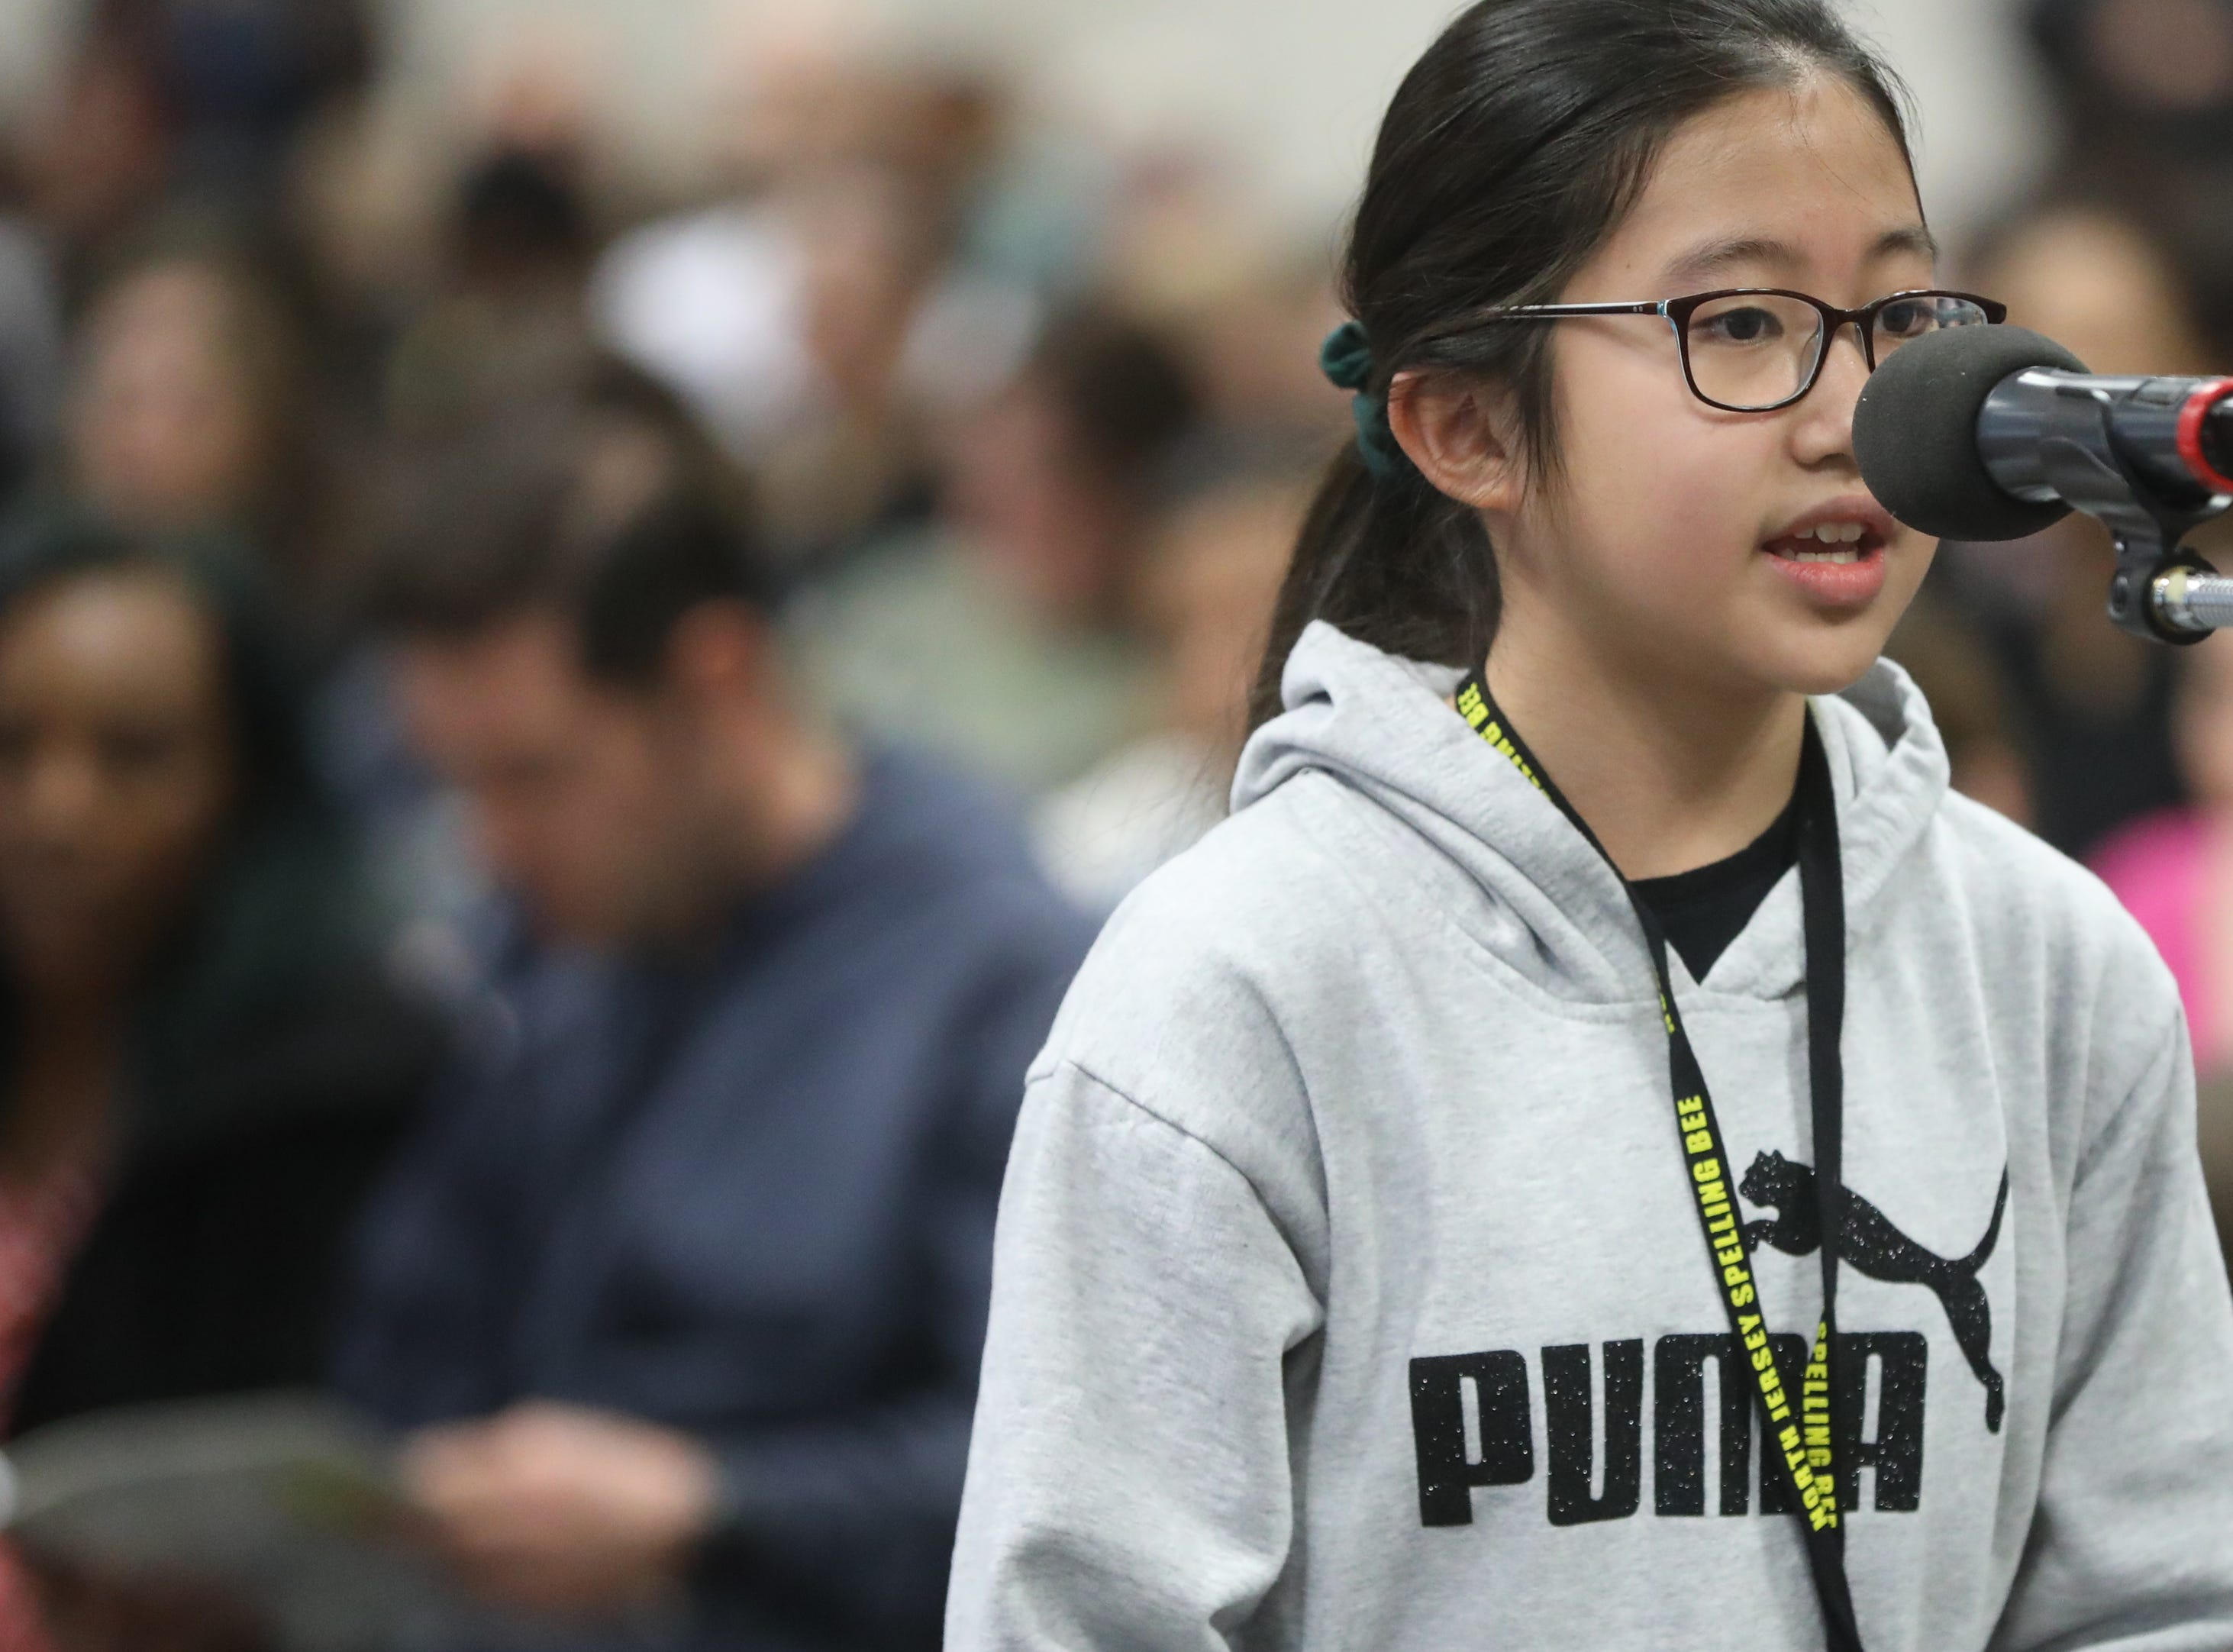 Leah Kwon, of Cresskill, competes in the first round of the 2019 North Jersey Spelling Bee, in Paramus. Thursday, March 14, 2019